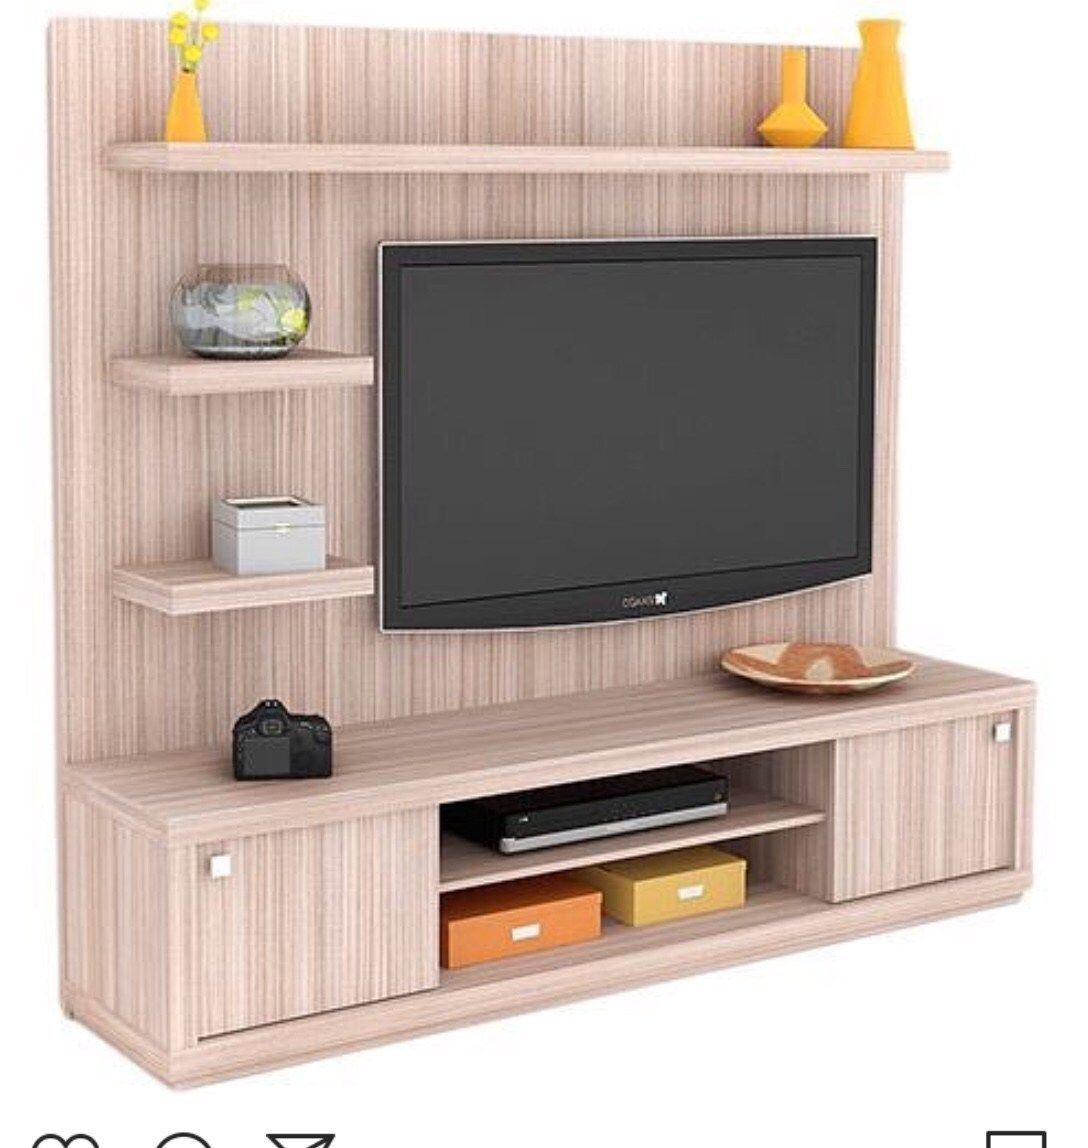 30 Amazing Tv Unit Design Ideas For Your Living Room The Wonder Cottage Tv Unit Furniture Tv Room Design Wall Unit Designs